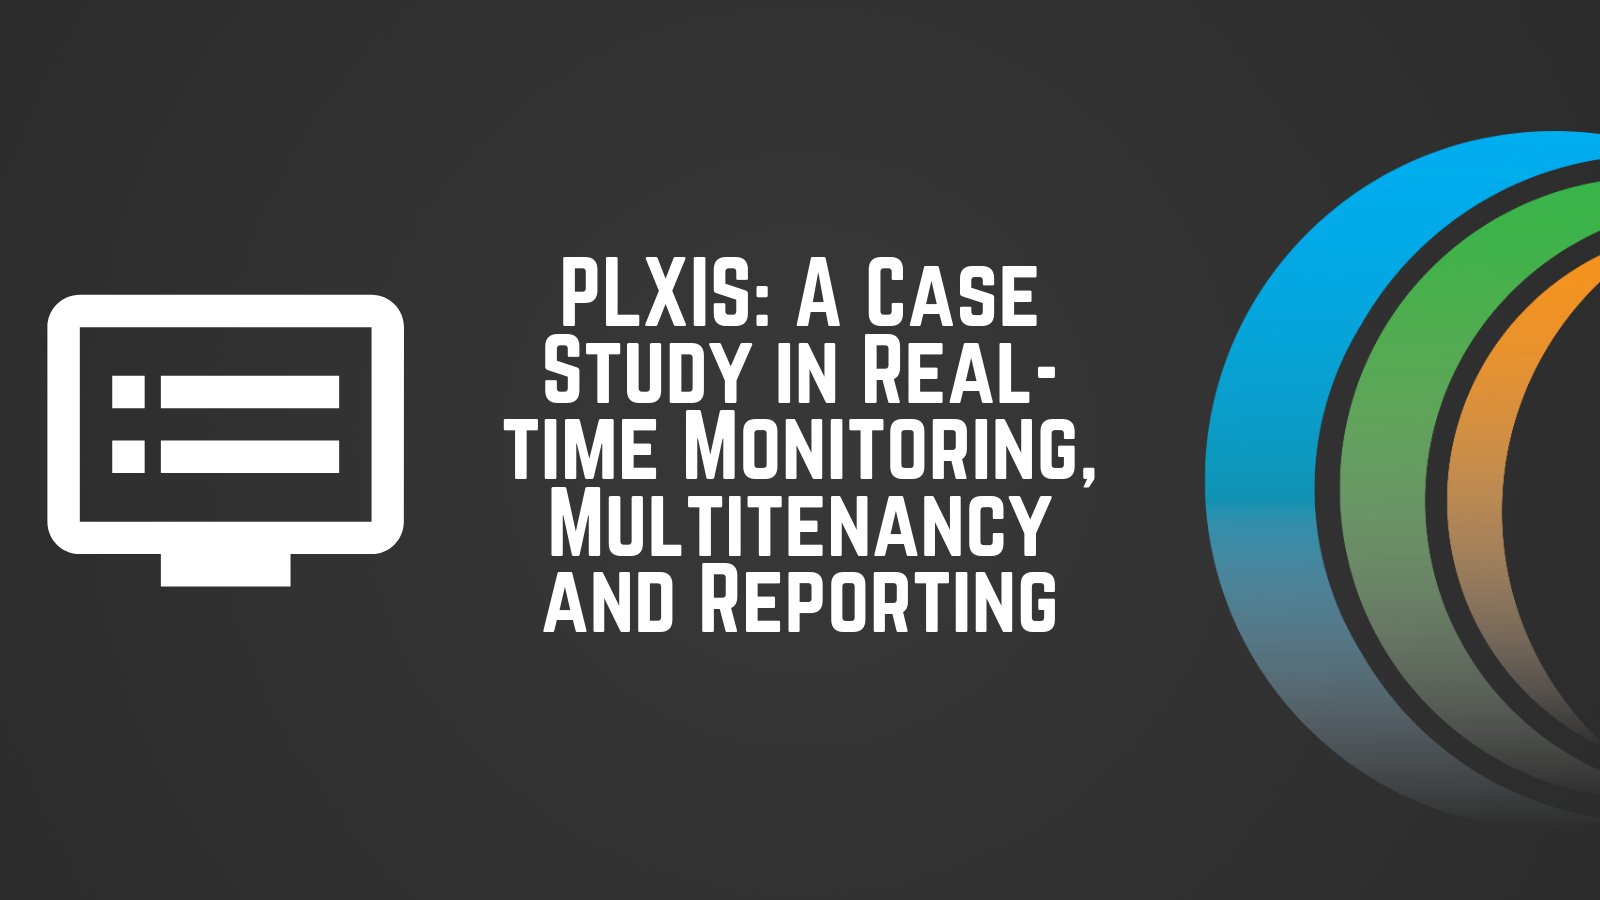 PLXIS_ A Case Study in Real-time Monitoring, Multitenancy and Reporting_Callibrity